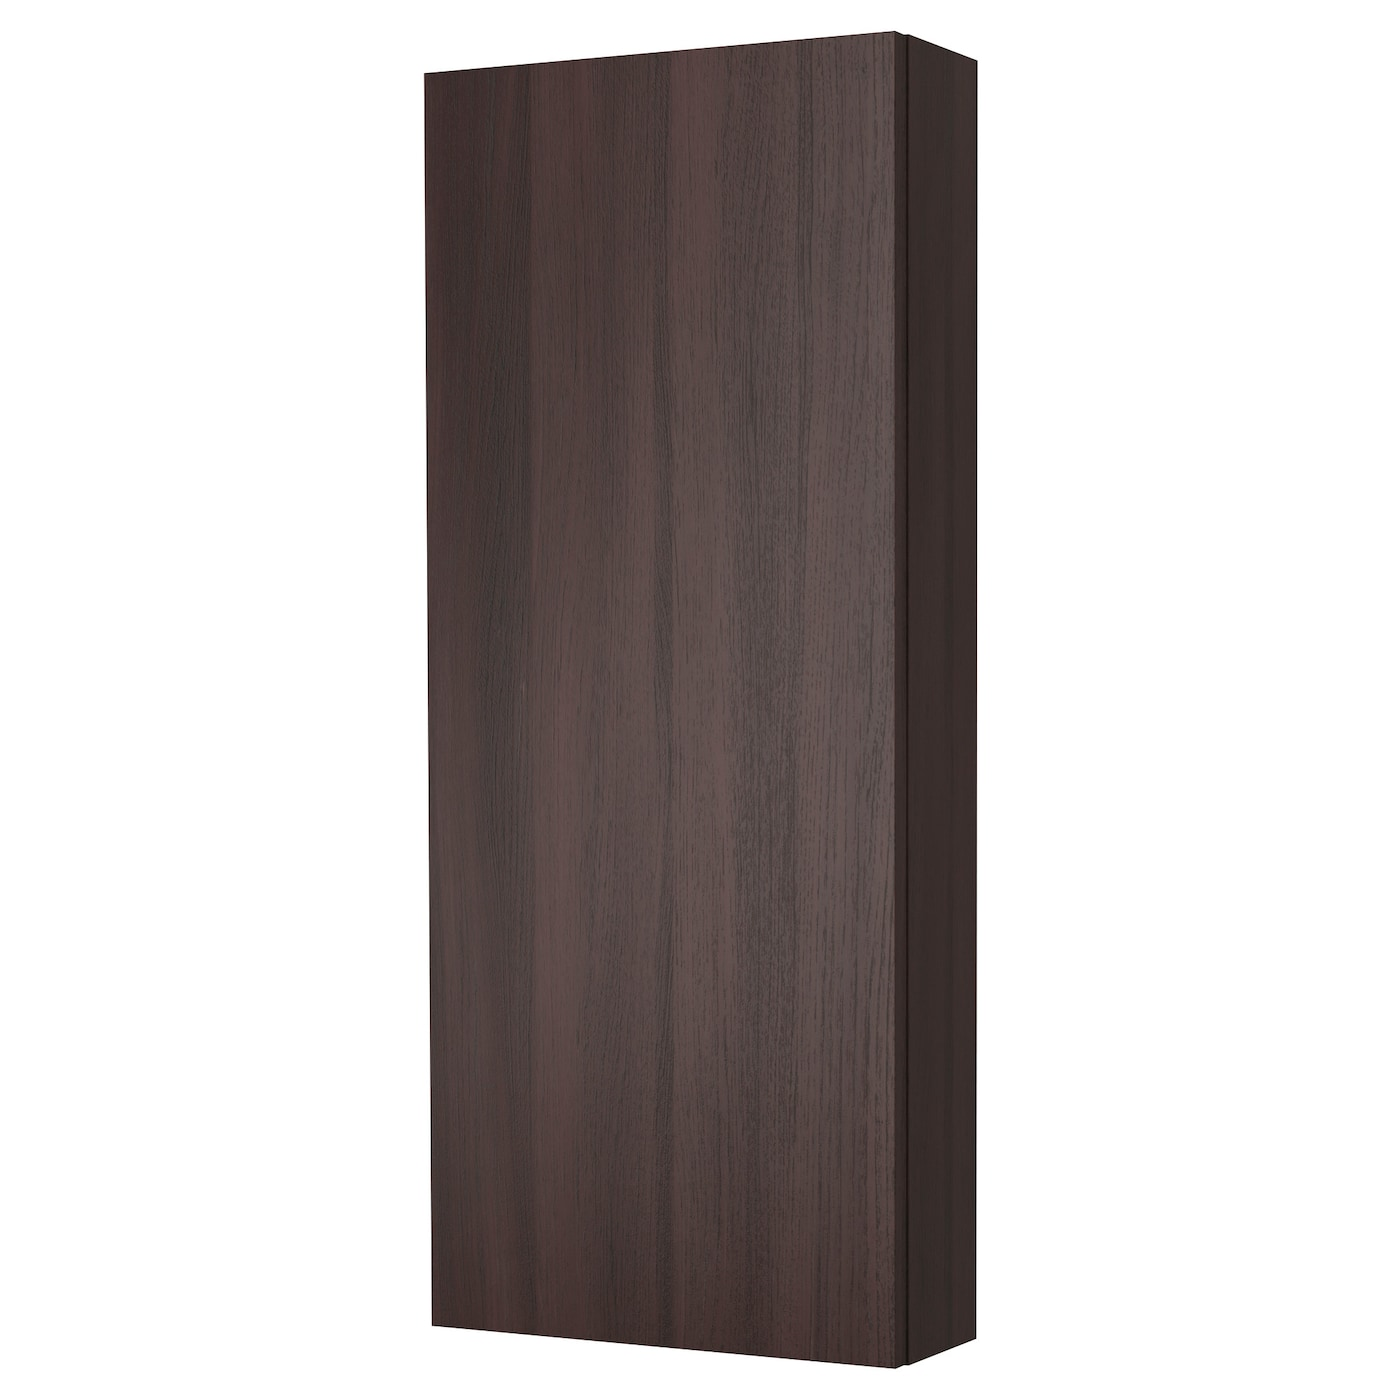 Ikea Godmorgon Wall Cabinet With 1 Door You Can Mount The Door To Open From  The